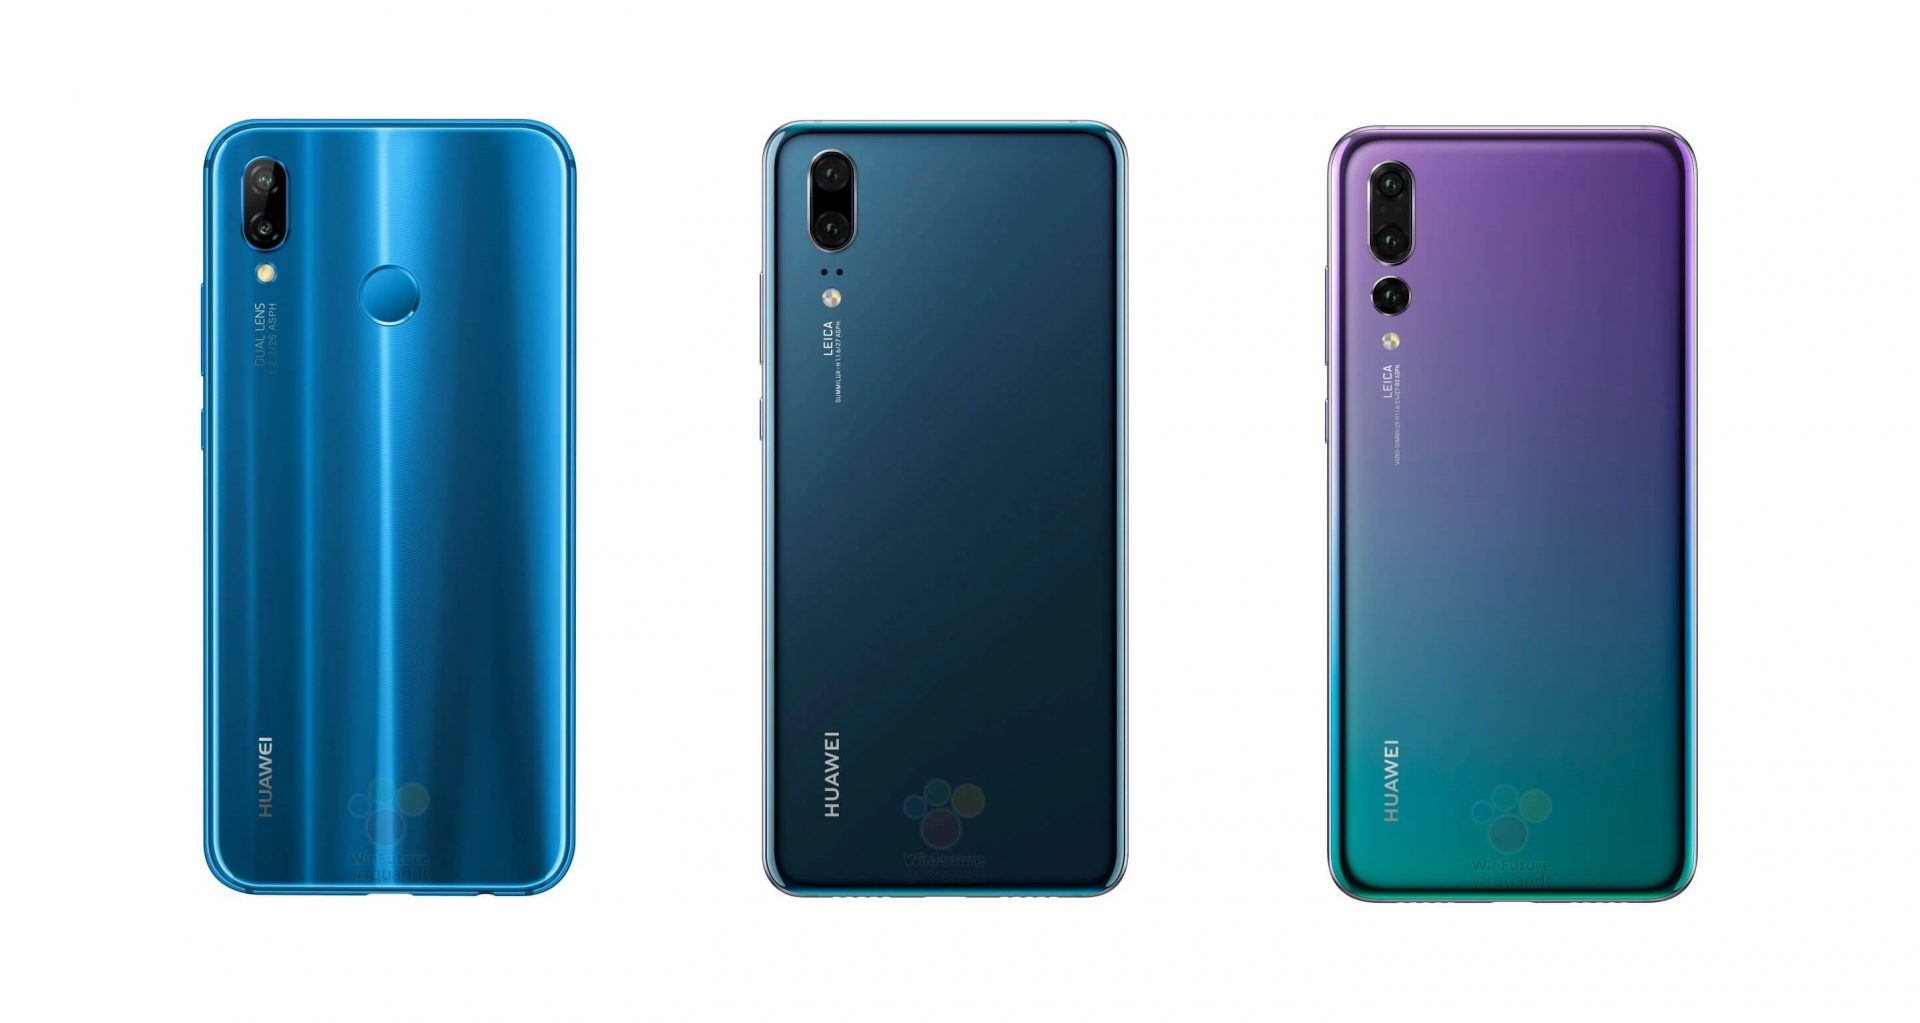 Huawei P20 E Huawei P20 Lite Disponibili All Acquisto In